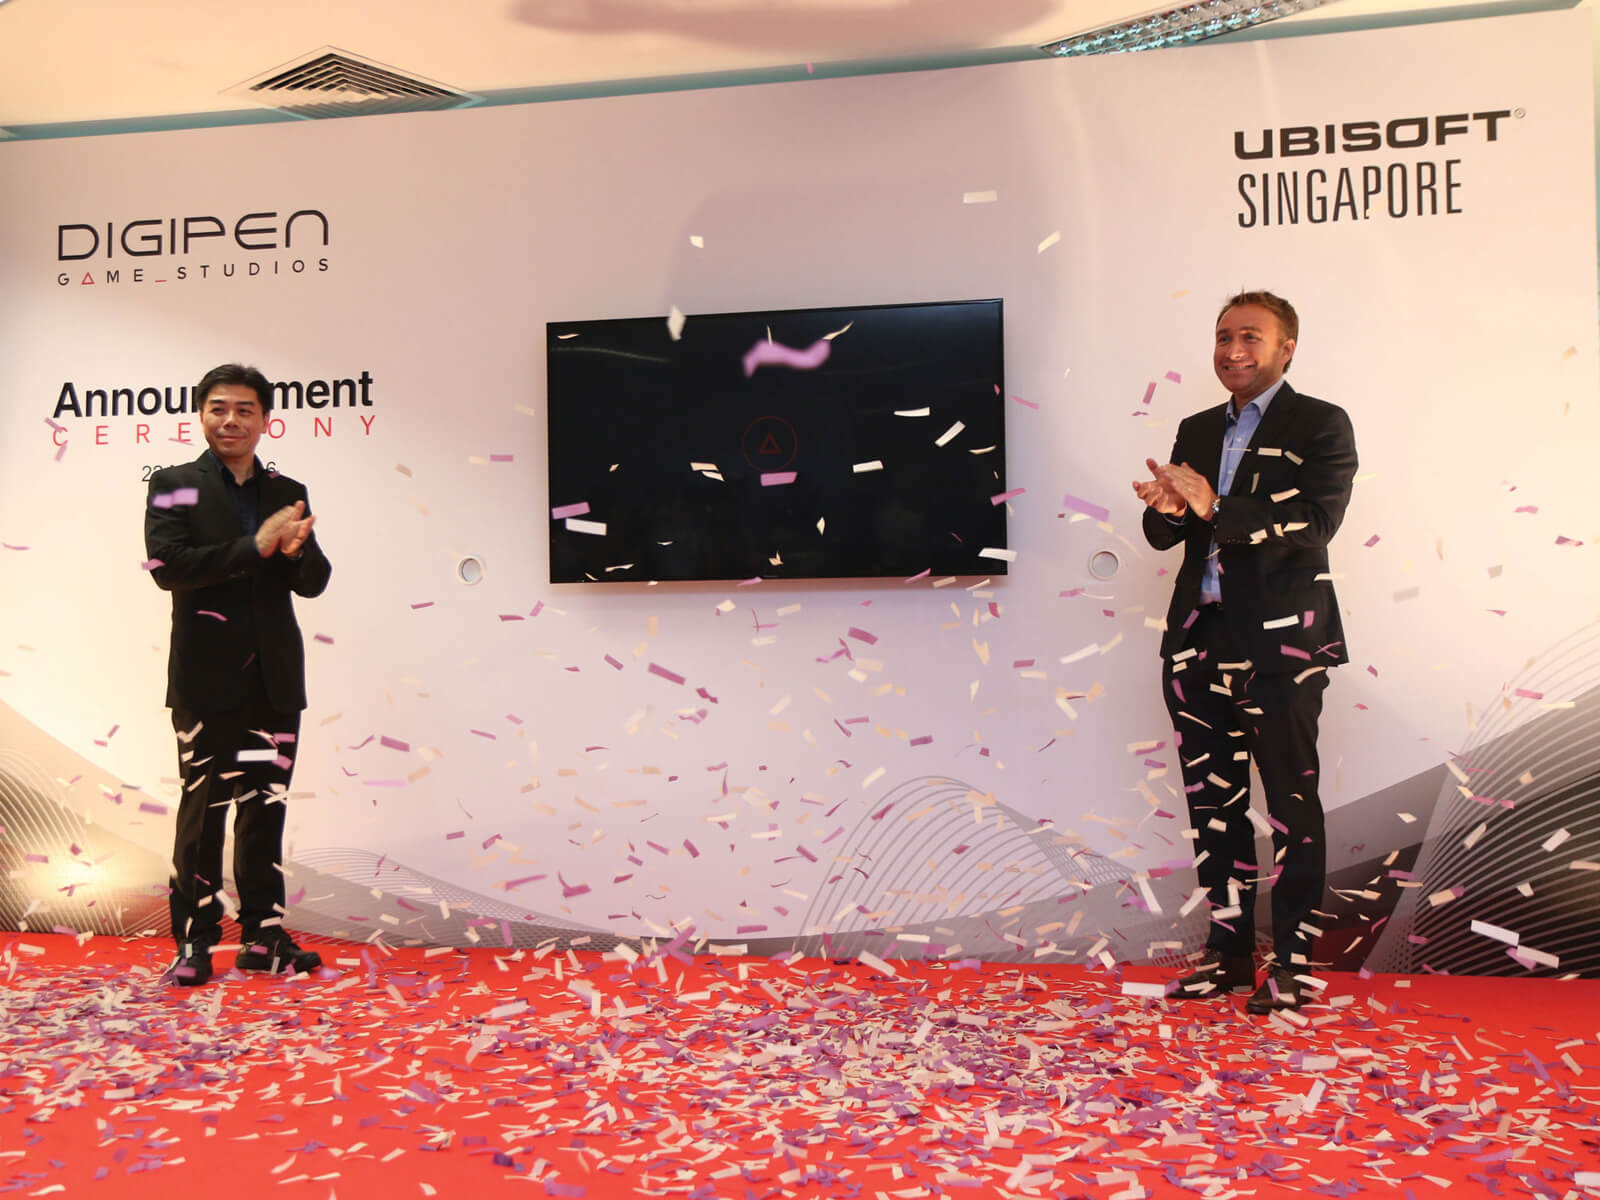 Jason Chu and Olivier de Rotalier applaud on stage as purple and white confetti falls. DigiPen and Ubisoft logos are on a wall behind them